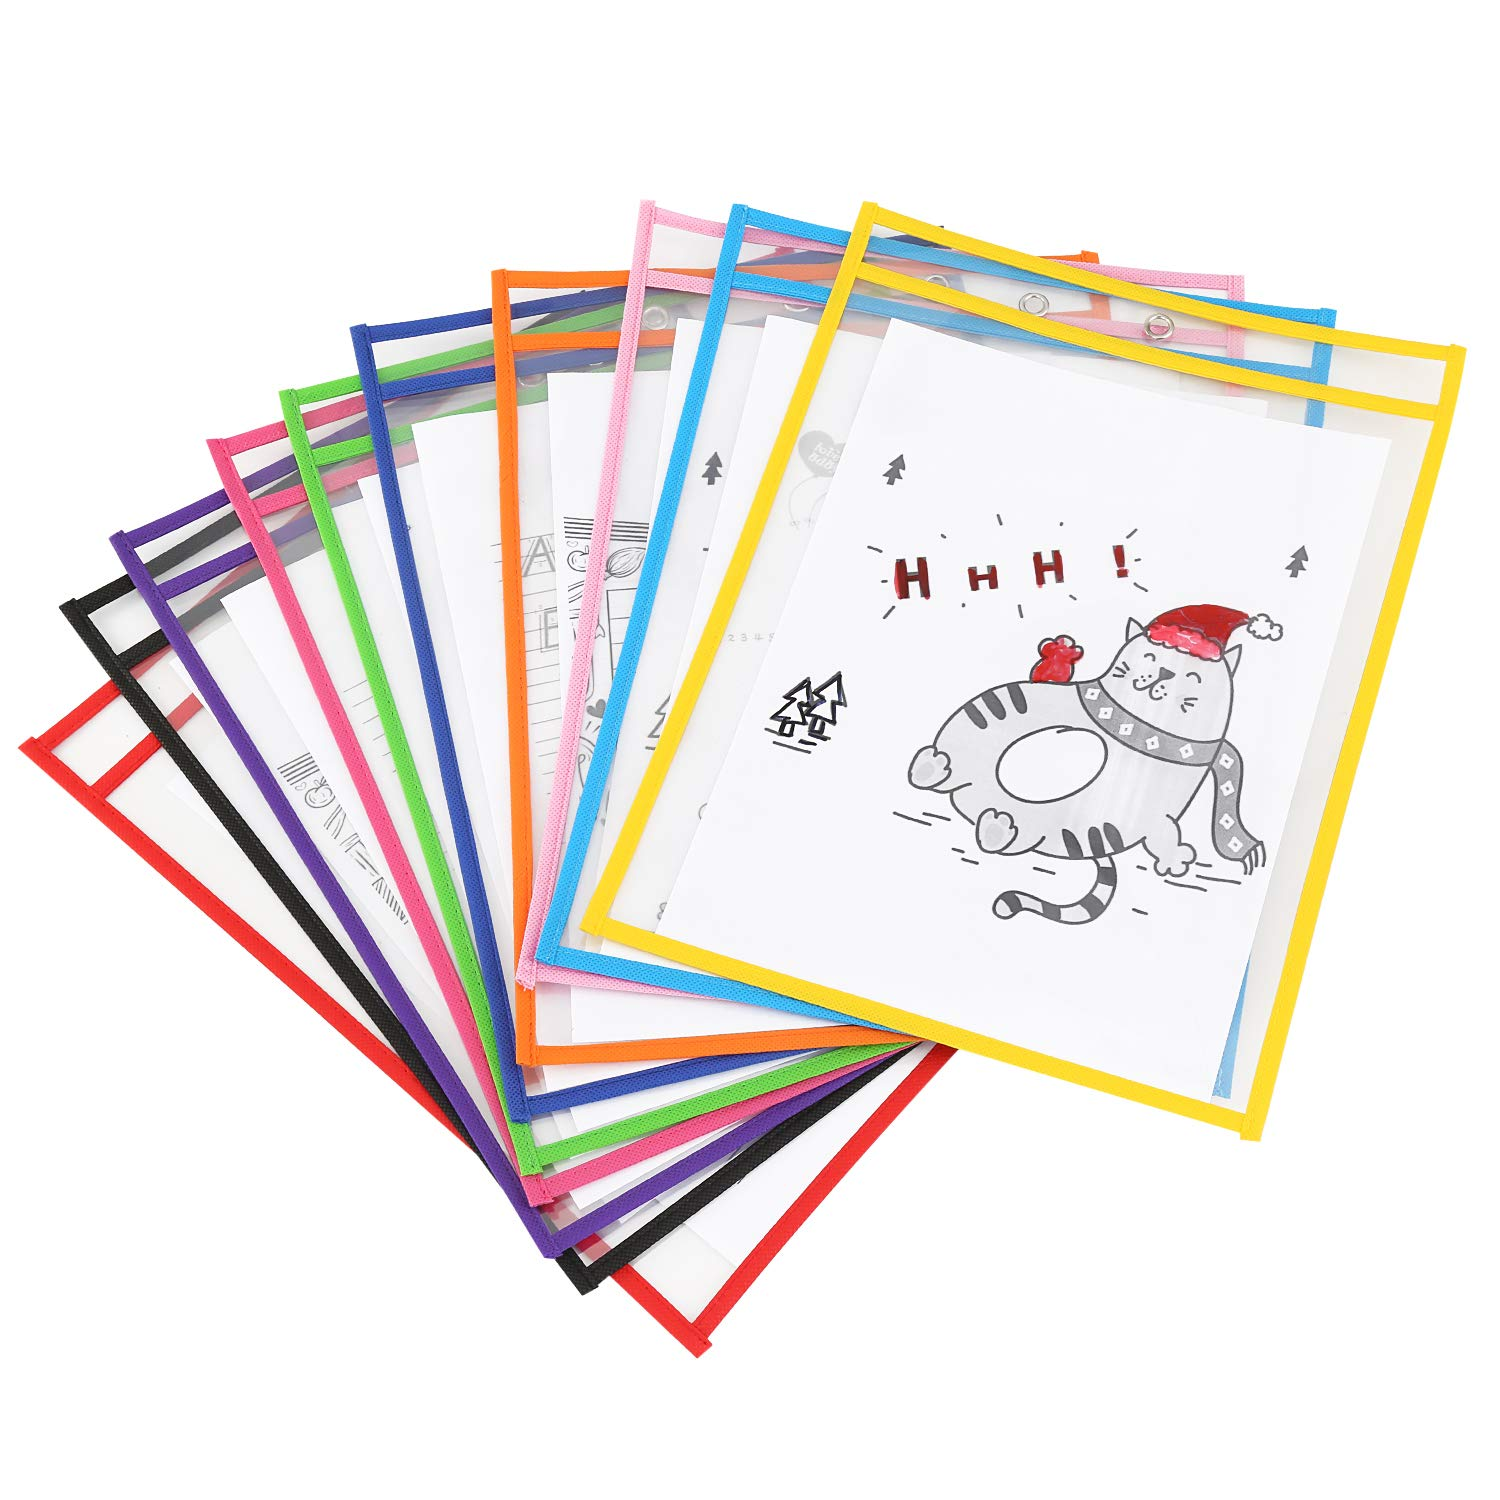 isingo Dry Erase Pockets, Wear-Resistant PET Material 9 x 12 inches, Perfect for Classroom Organization, Reusable Dry Erase Pockets, Teaching Supplies, 10 Pockets per Pack